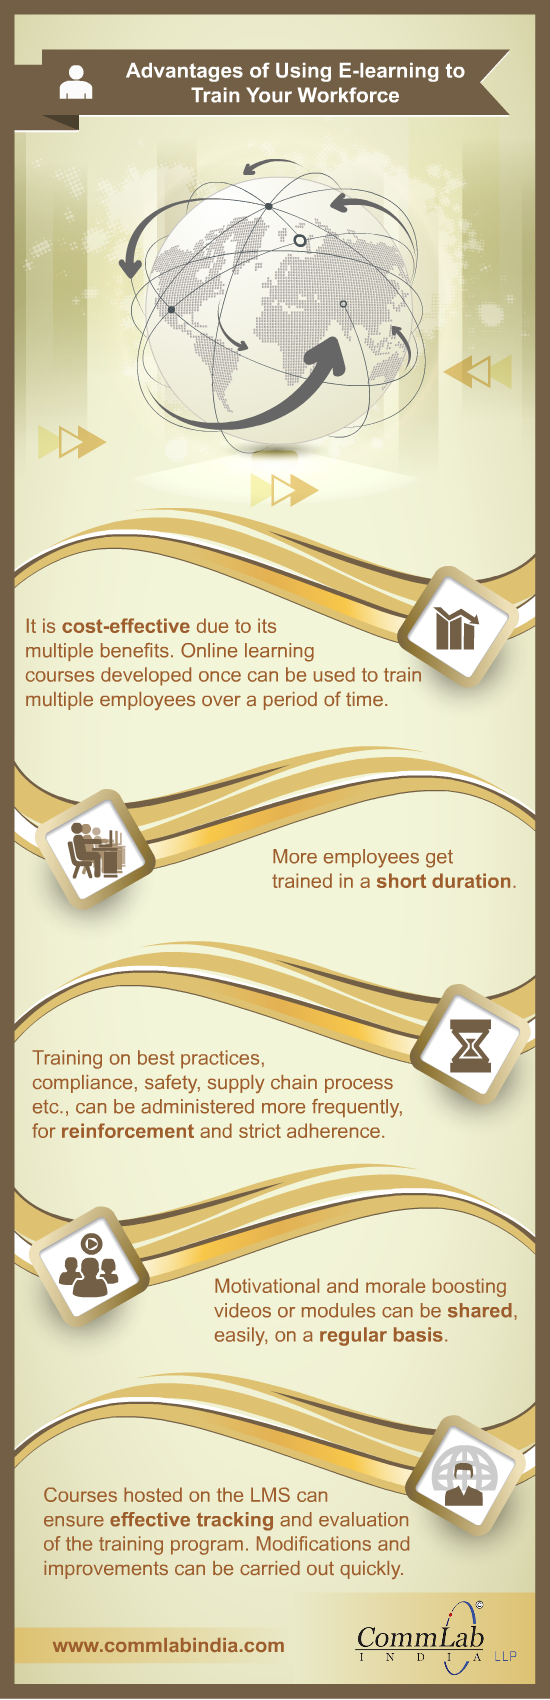 Advantages of Using E-learning to Train Your Workforce - An Infographic